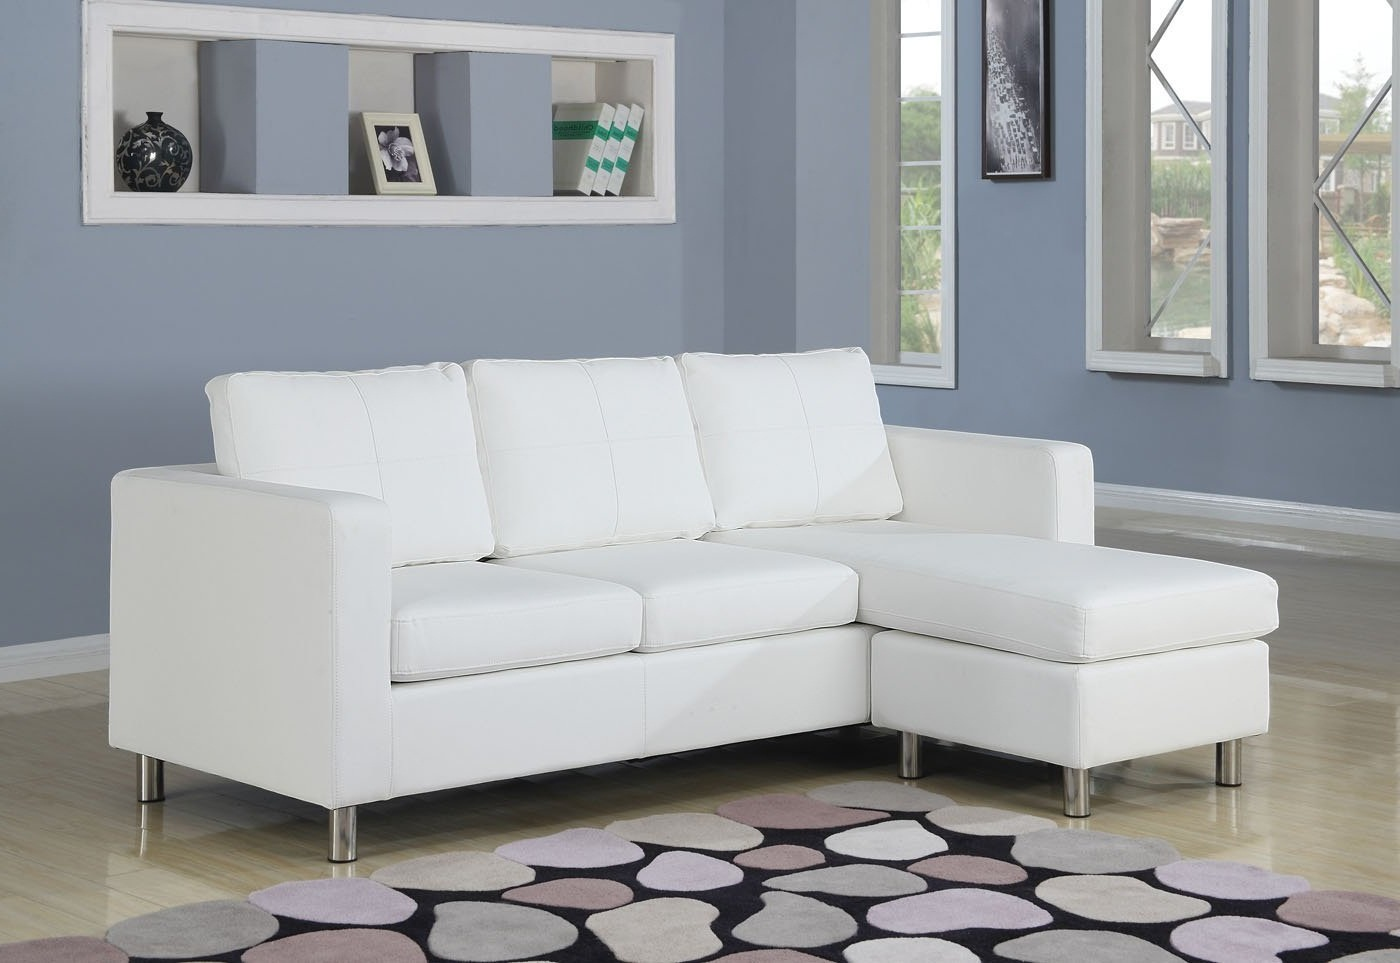 Small sectional sofa with chaise perfect choice for a - Small apartment sectional sofa ...